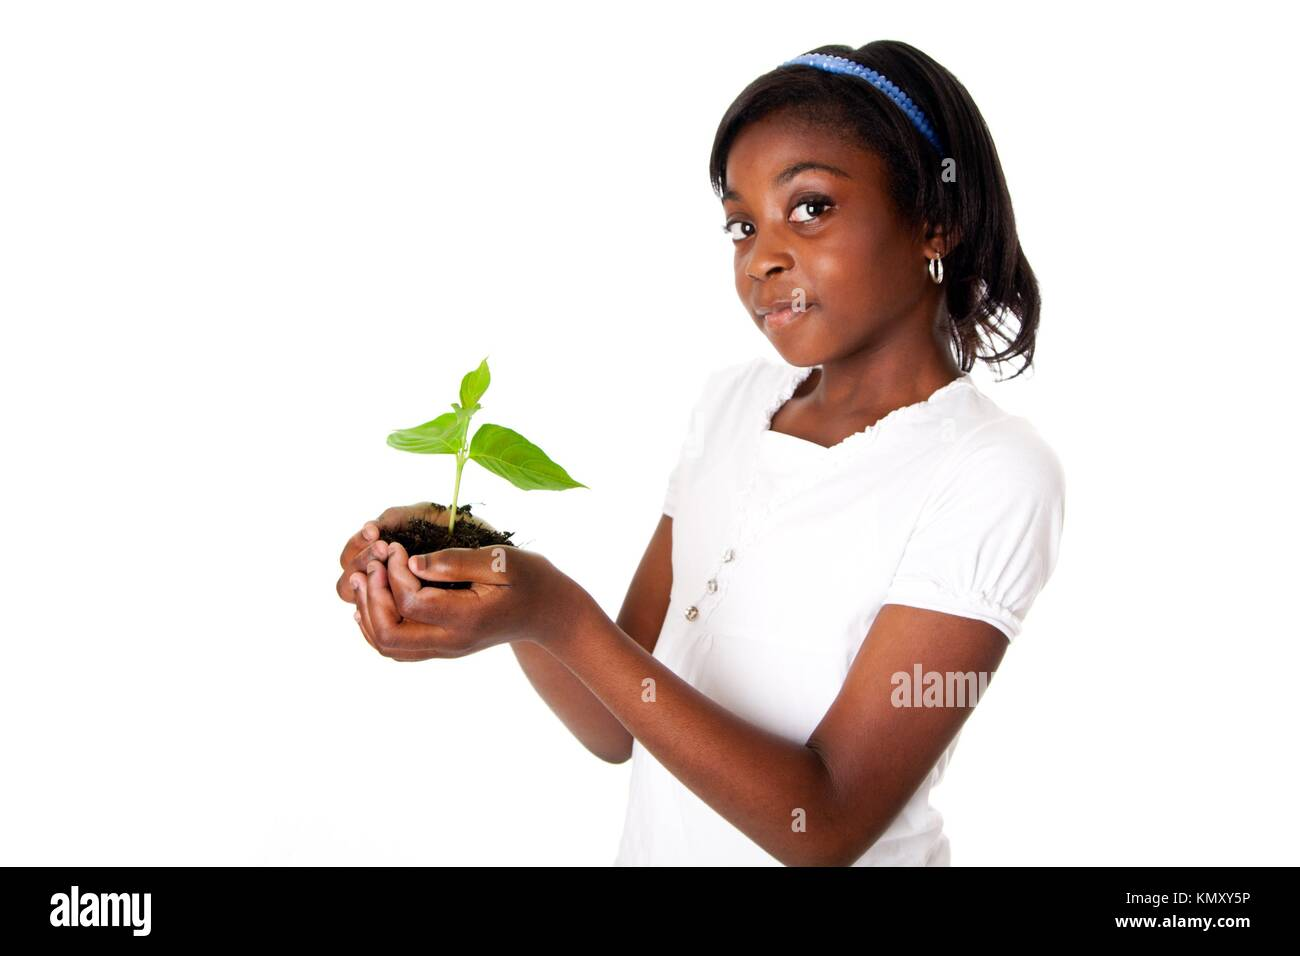 A young new plant growing from palm in hands of beautiful African girl, isolated  Drought on Earth concept - Stock Image